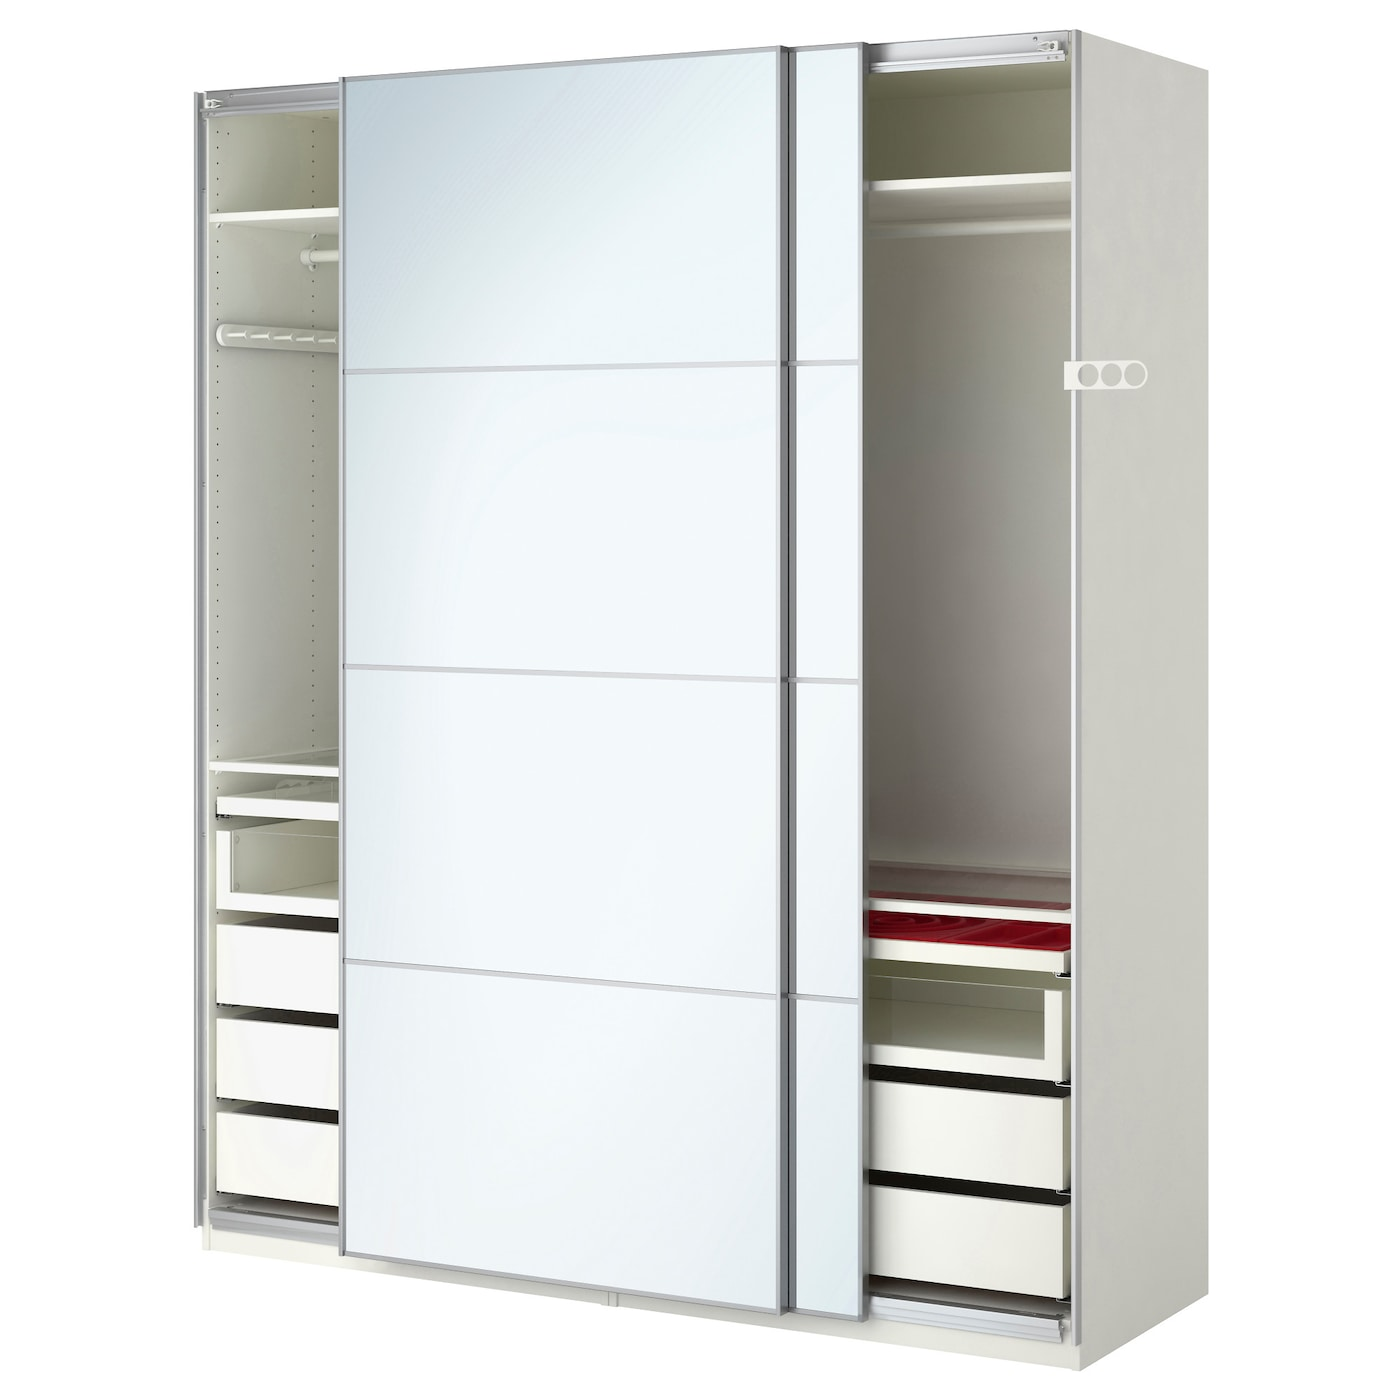 Pax wardrobe white auli mirror glass 200x66x236 cm ikea for Ikea porte miroir